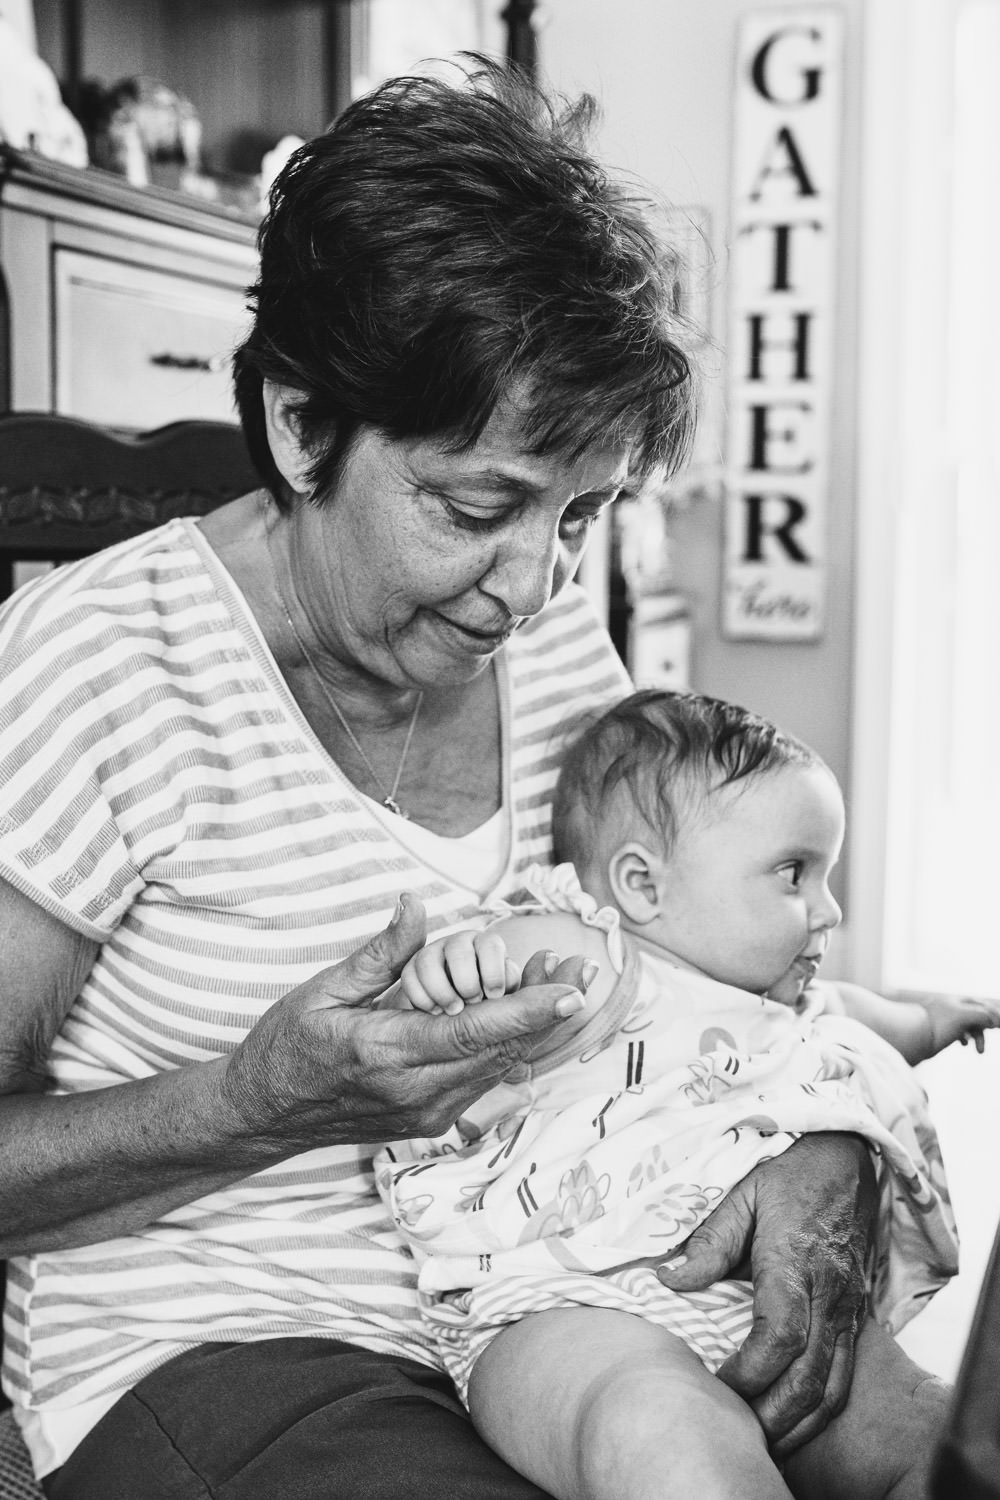 A grandmother looks at her granddaughter's hands.